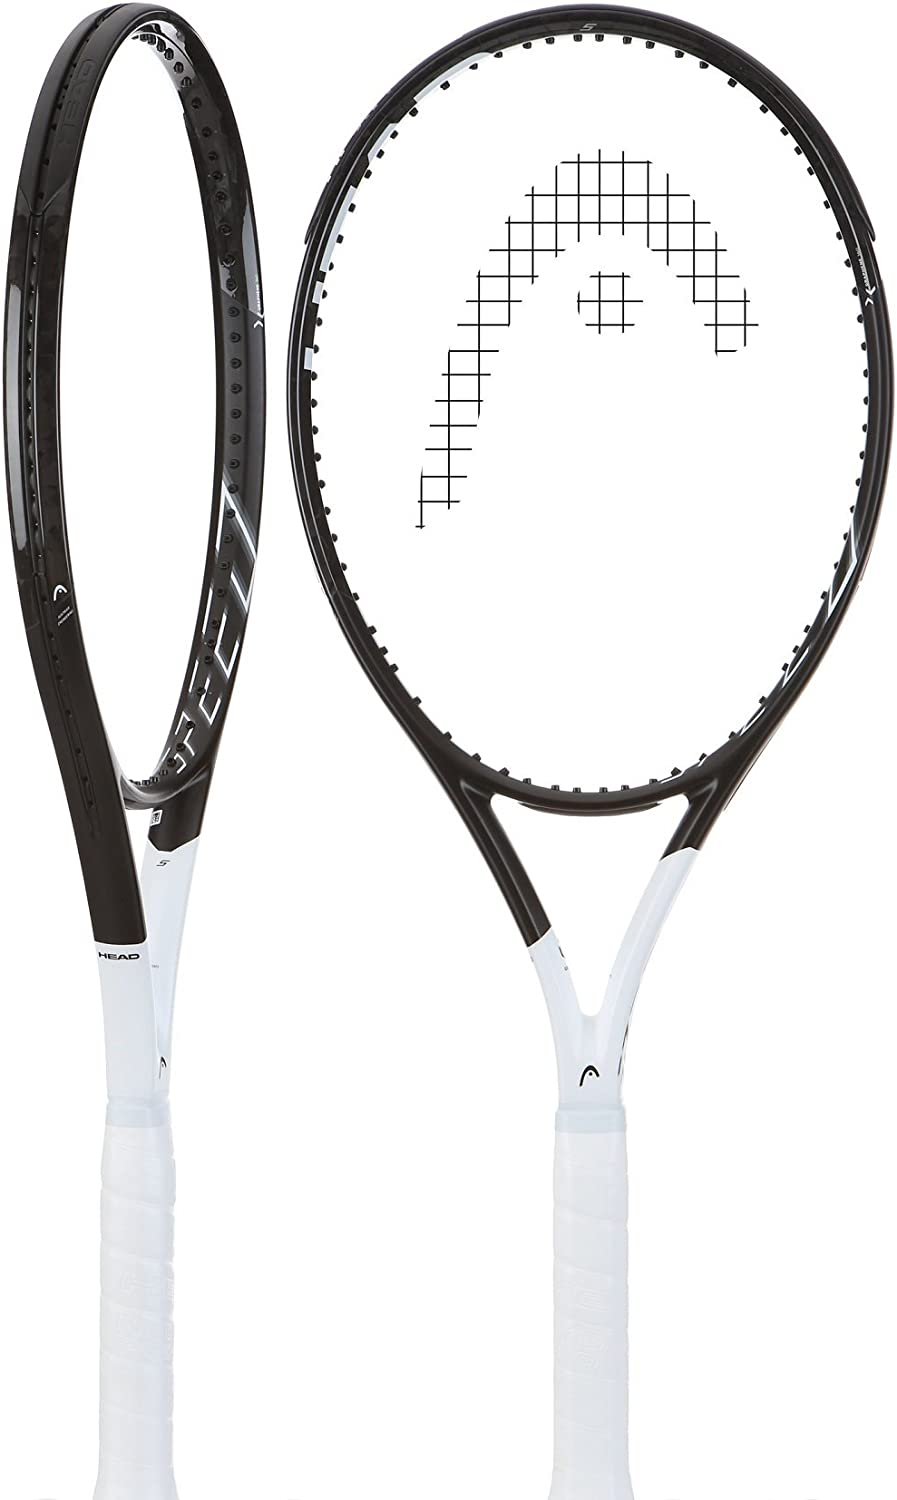 Best Lightweight Racket for Spin and Power HEAD Graphene 360 Speed S Midplus 16x19 Black//White Tennis Racquet Strung with Custom Complimentary String Colors